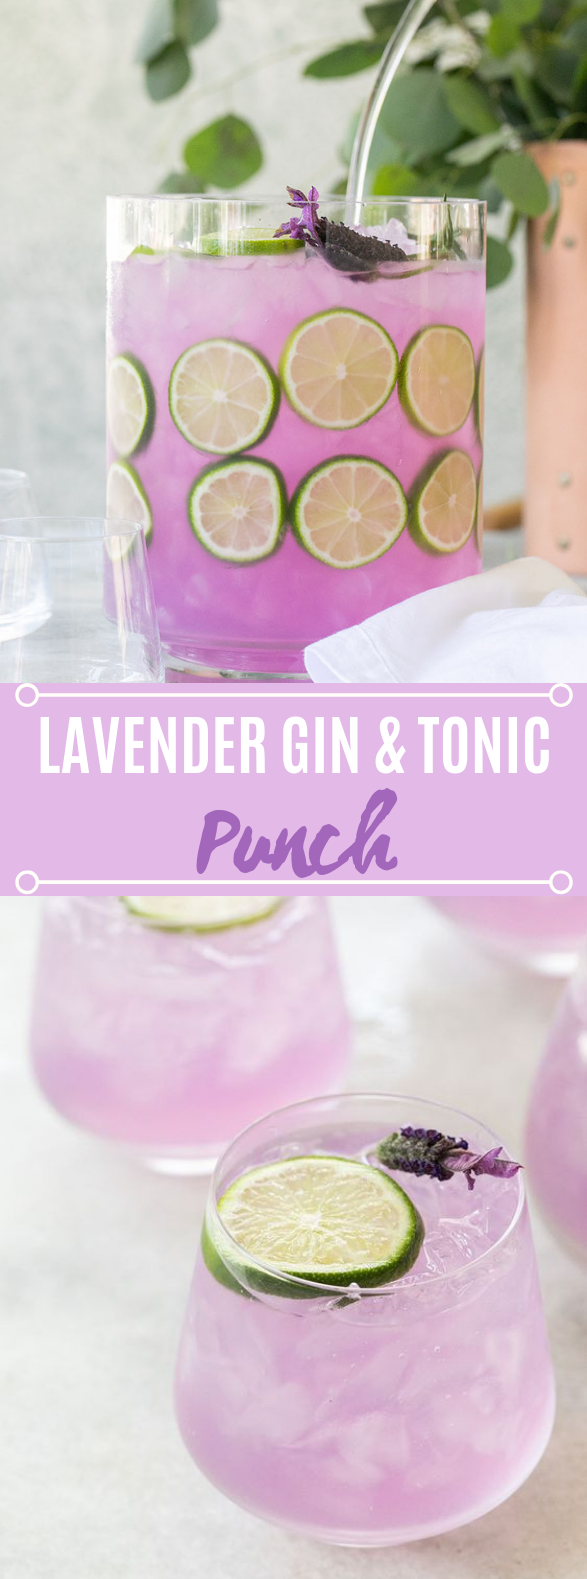 Lavender Gin and Tonic Punch #drinks #cocktails